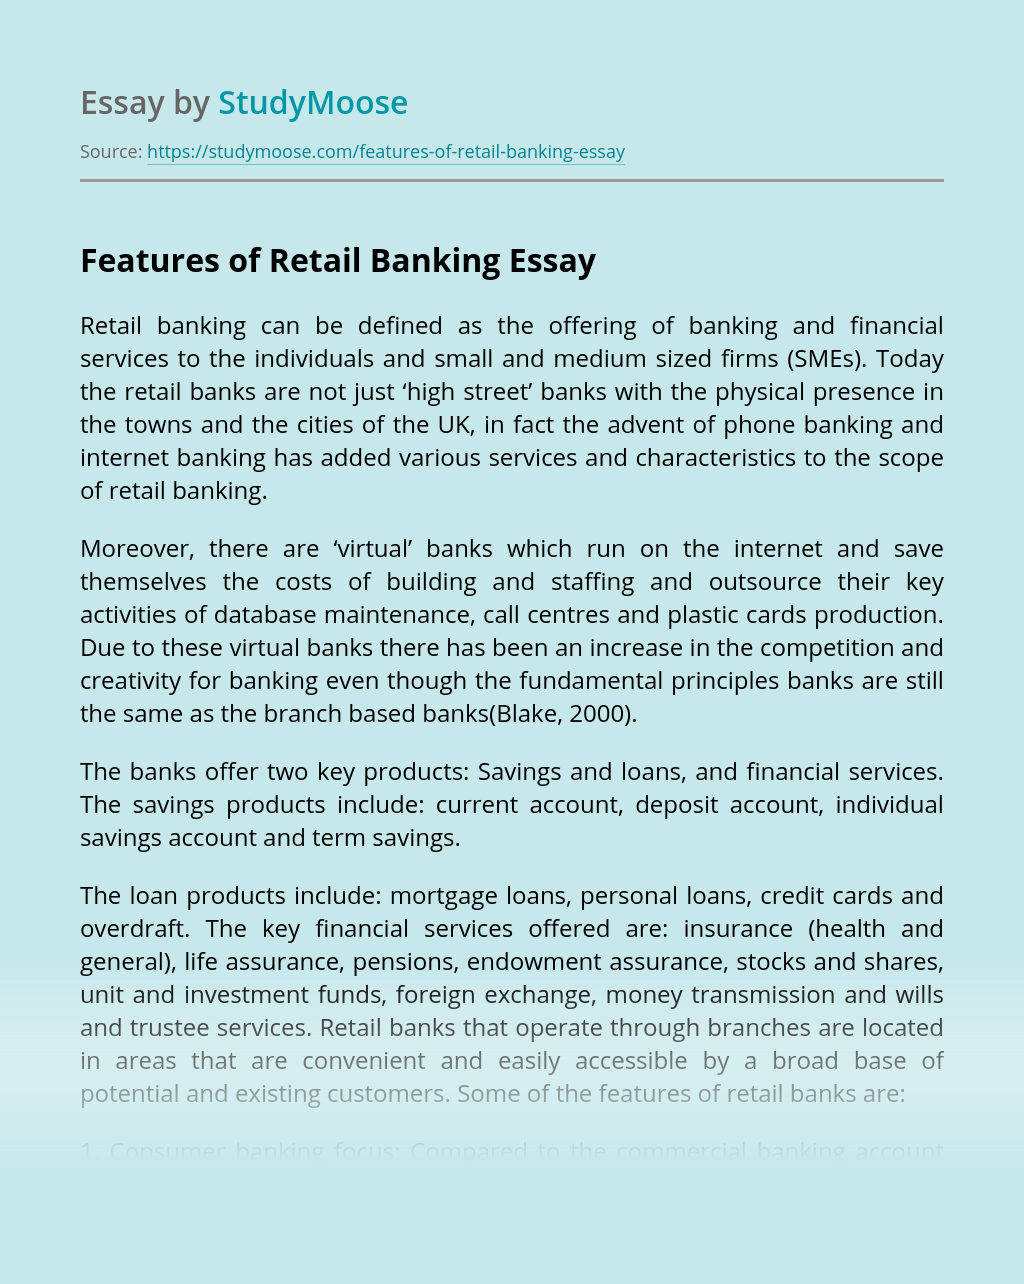 Features of Retail Banking